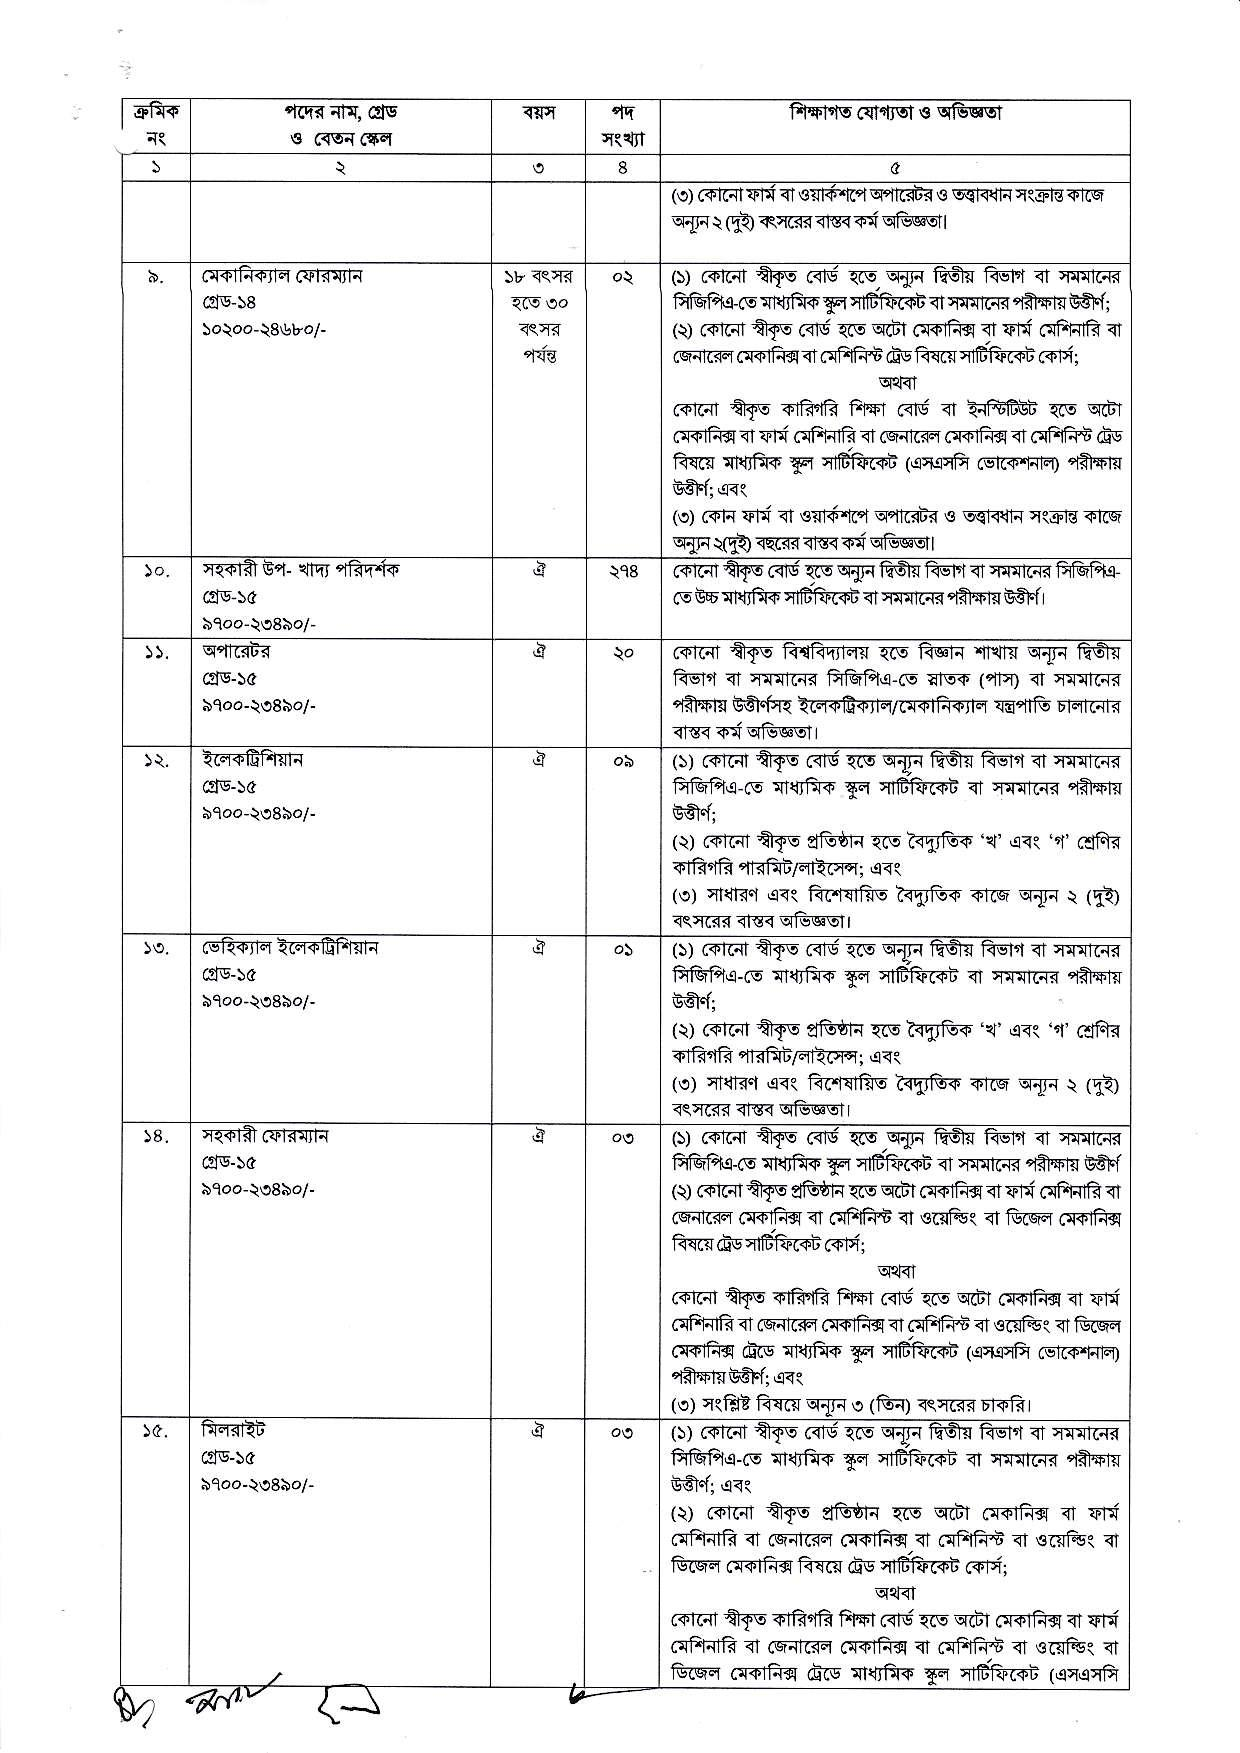 Directorate-General-of-Food-dgfood-Job-Circular-2018-page-002